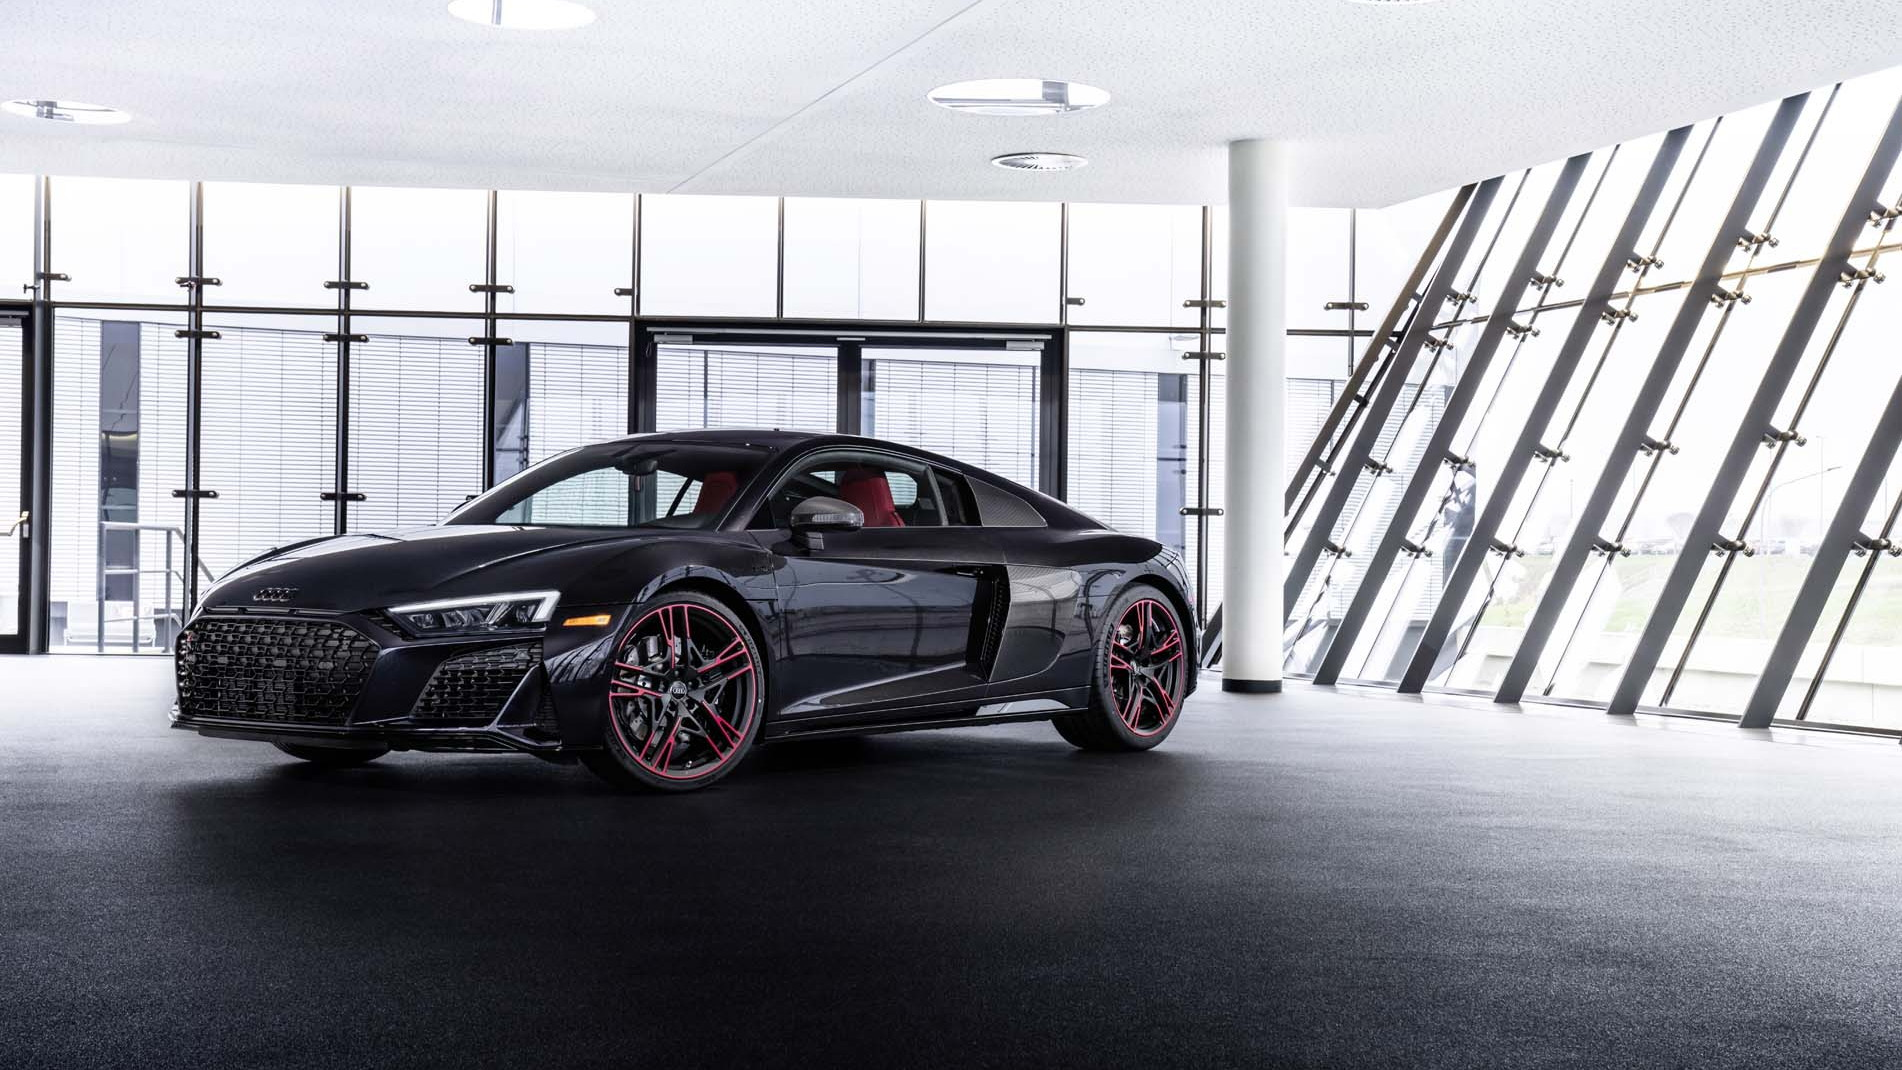 2021 Audi R8 V10 RWD Panther edition